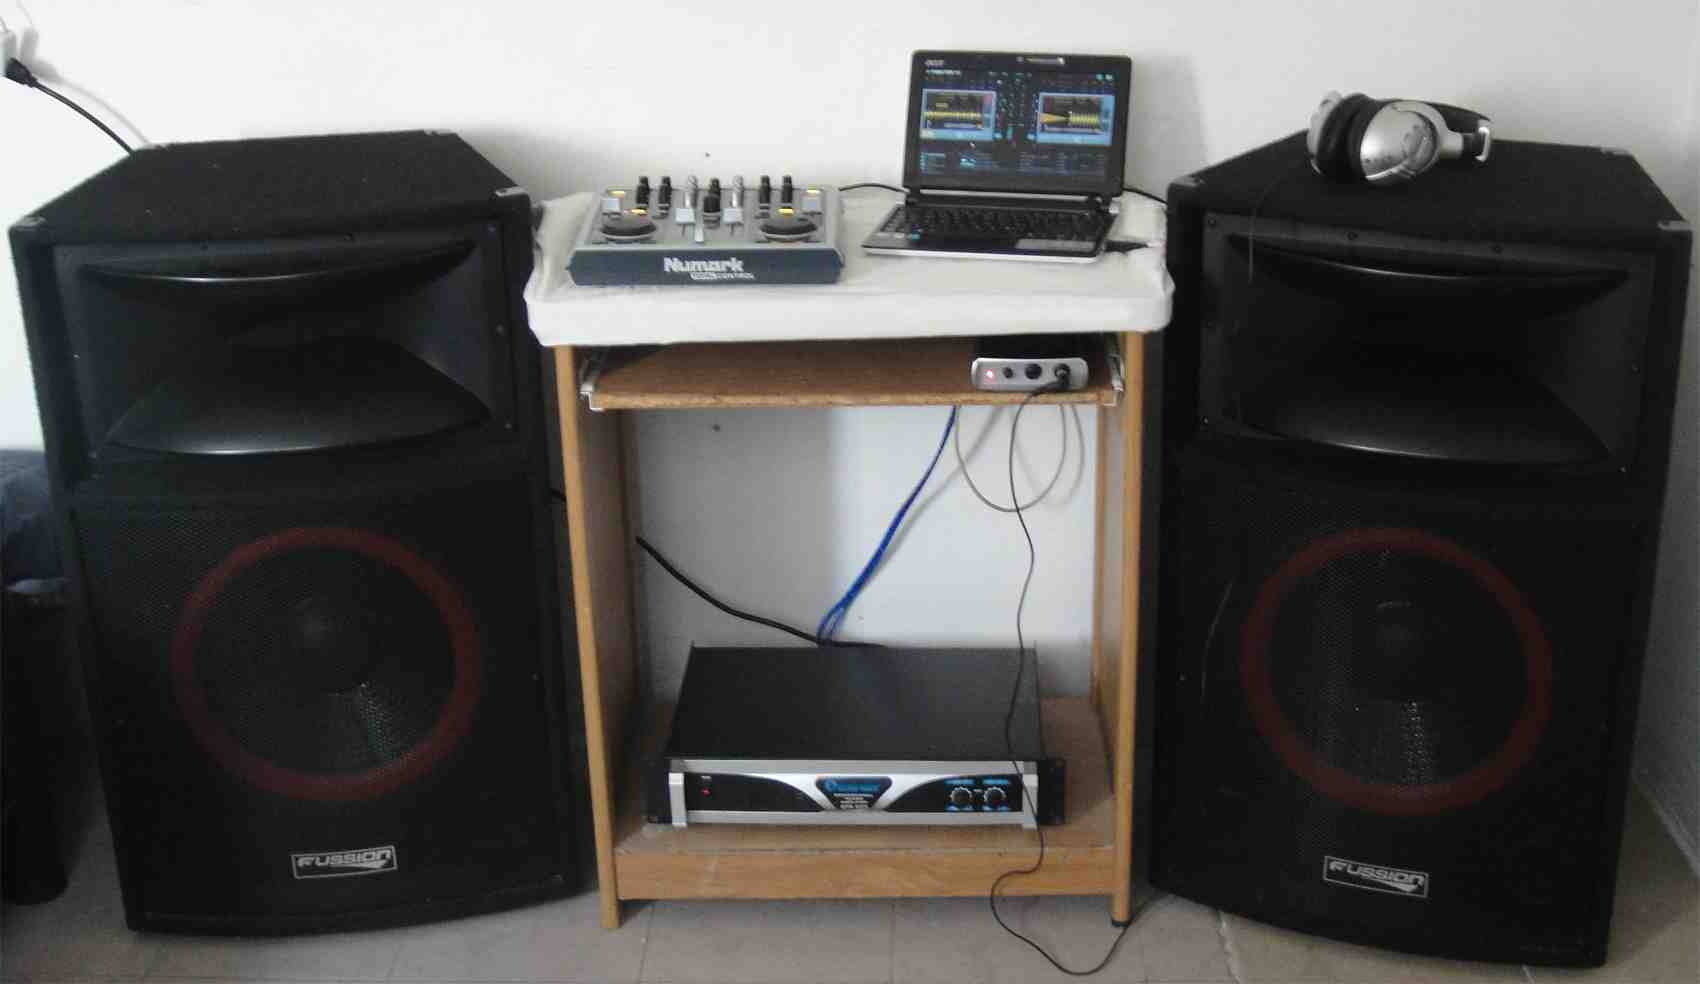 DJ Marvin Kamikaze's home set-up